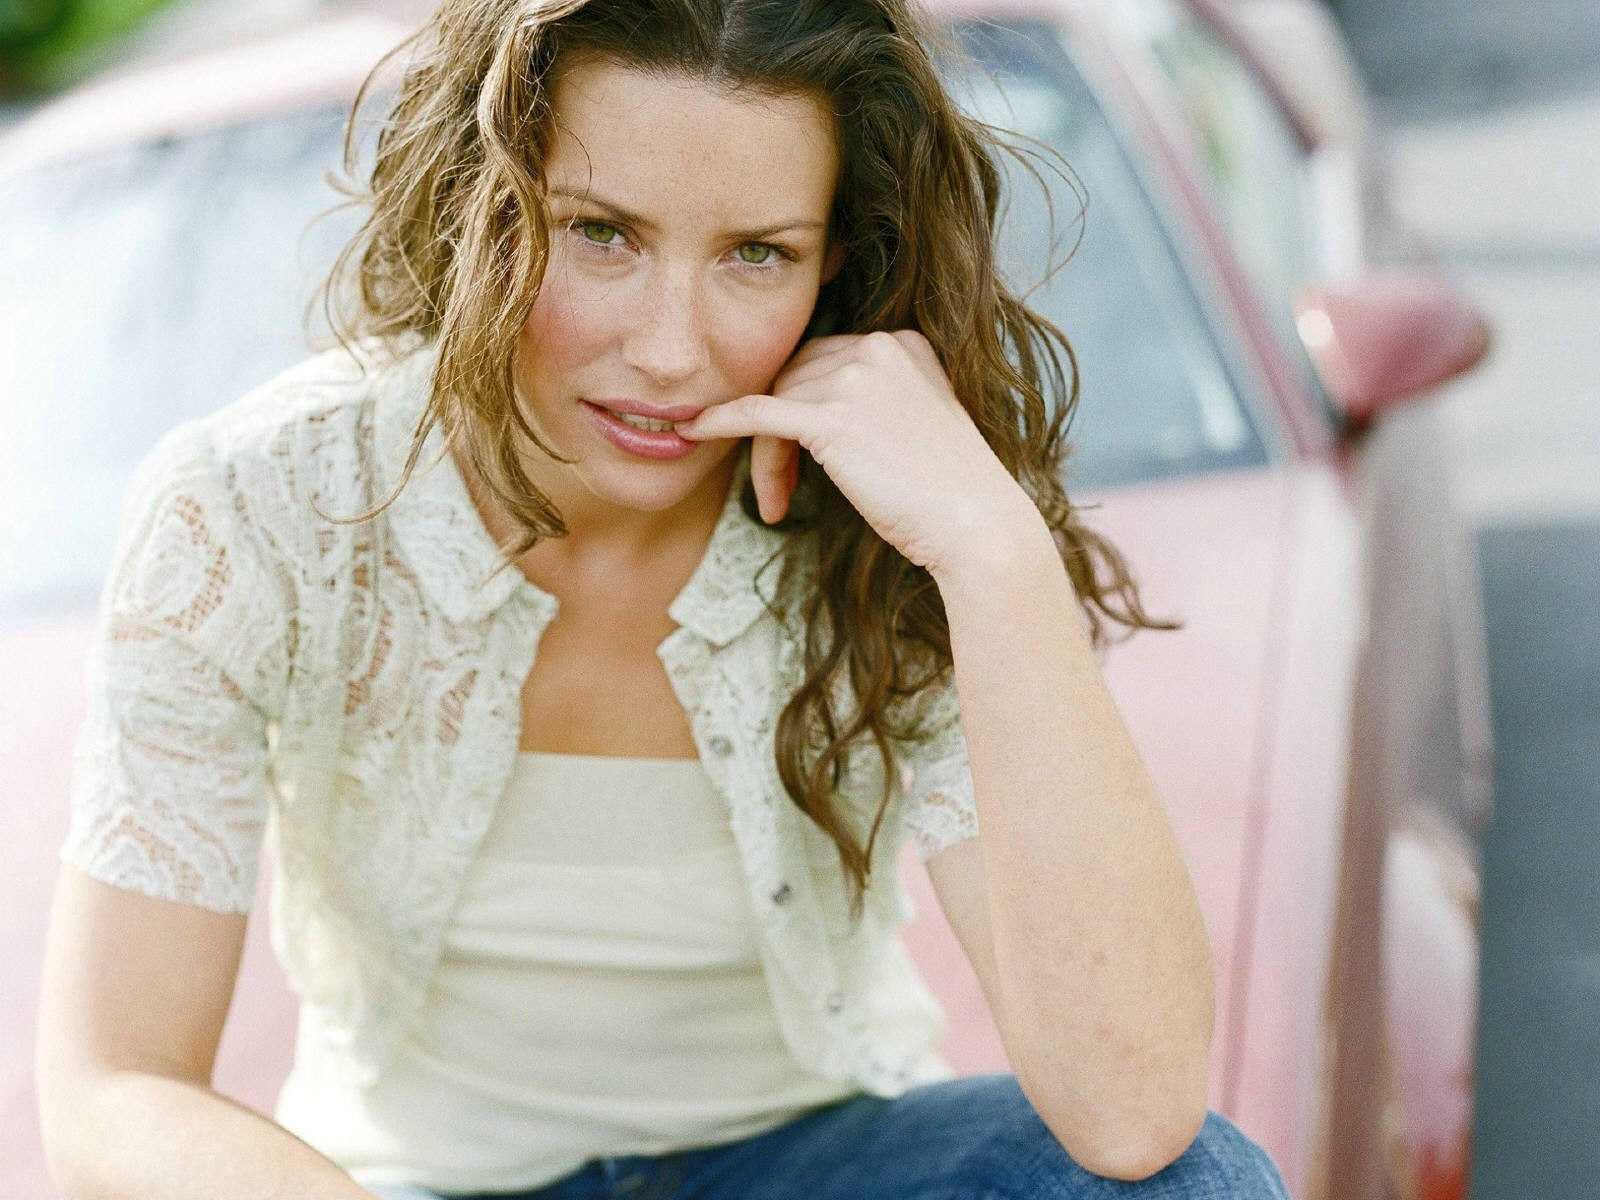 Wallpaper dell'attrice canadese Evangeline Lilly